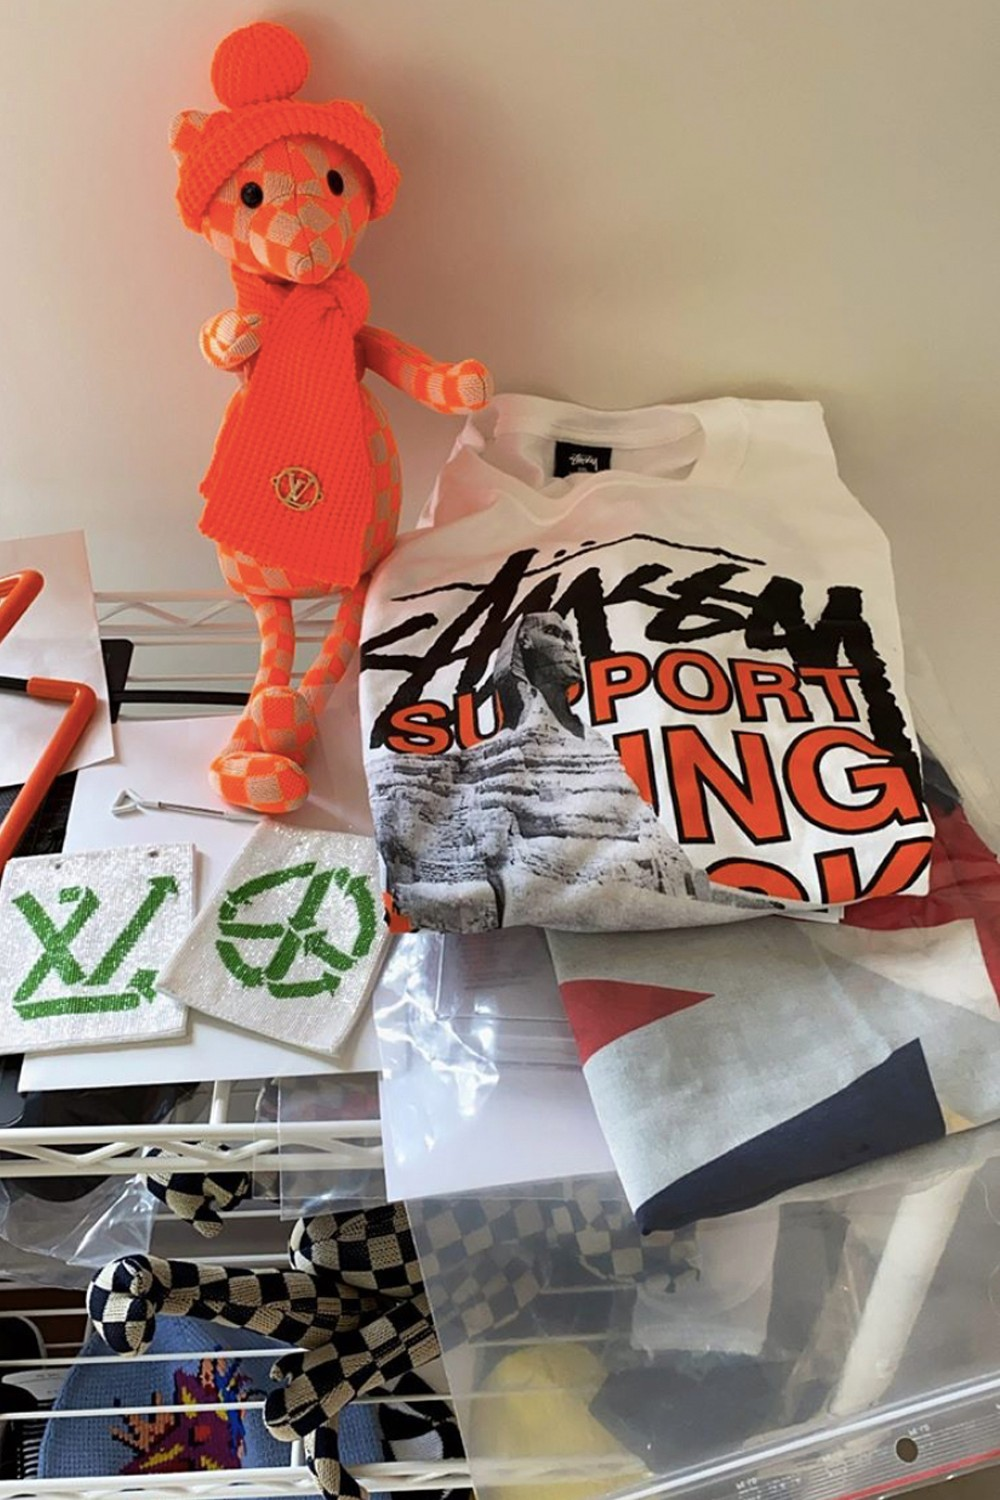 https___hk.hypebeast.com_files_2020_09_virgil-abloh-off-white-stussy-collaborati.jpg